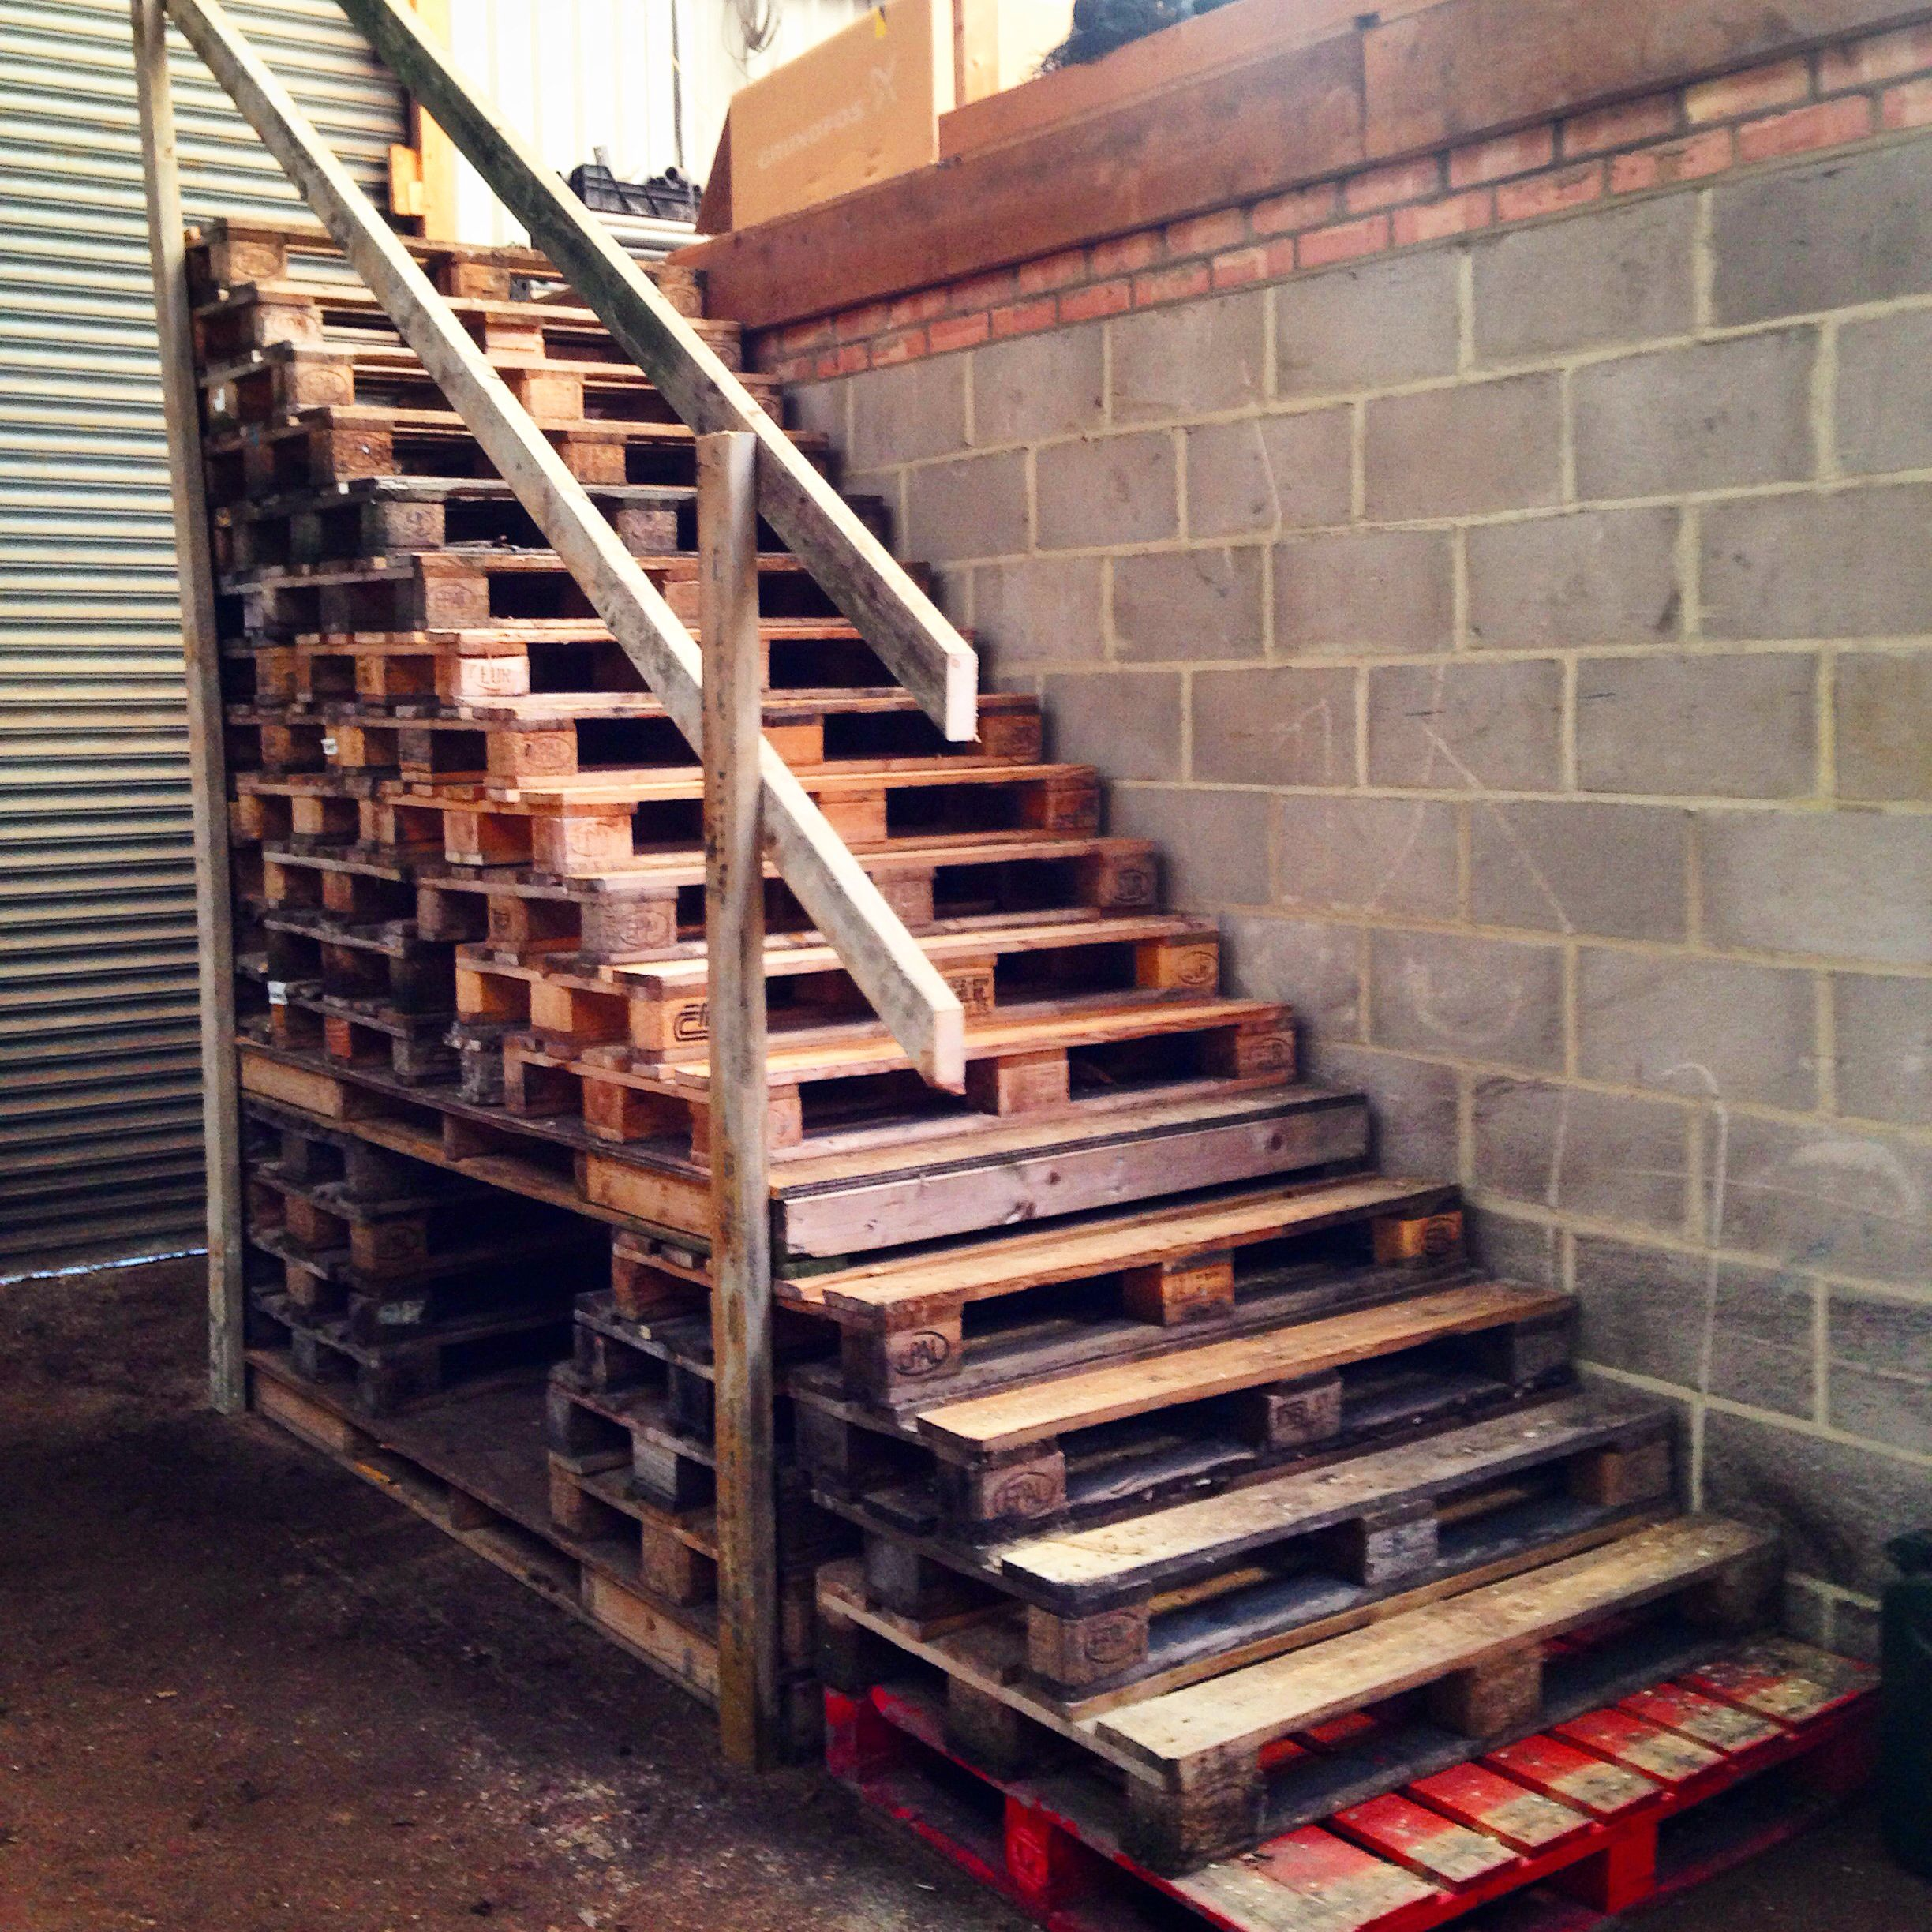 Wooden Pallet Stairs Ideas: Stairs And Under-the-Stairs